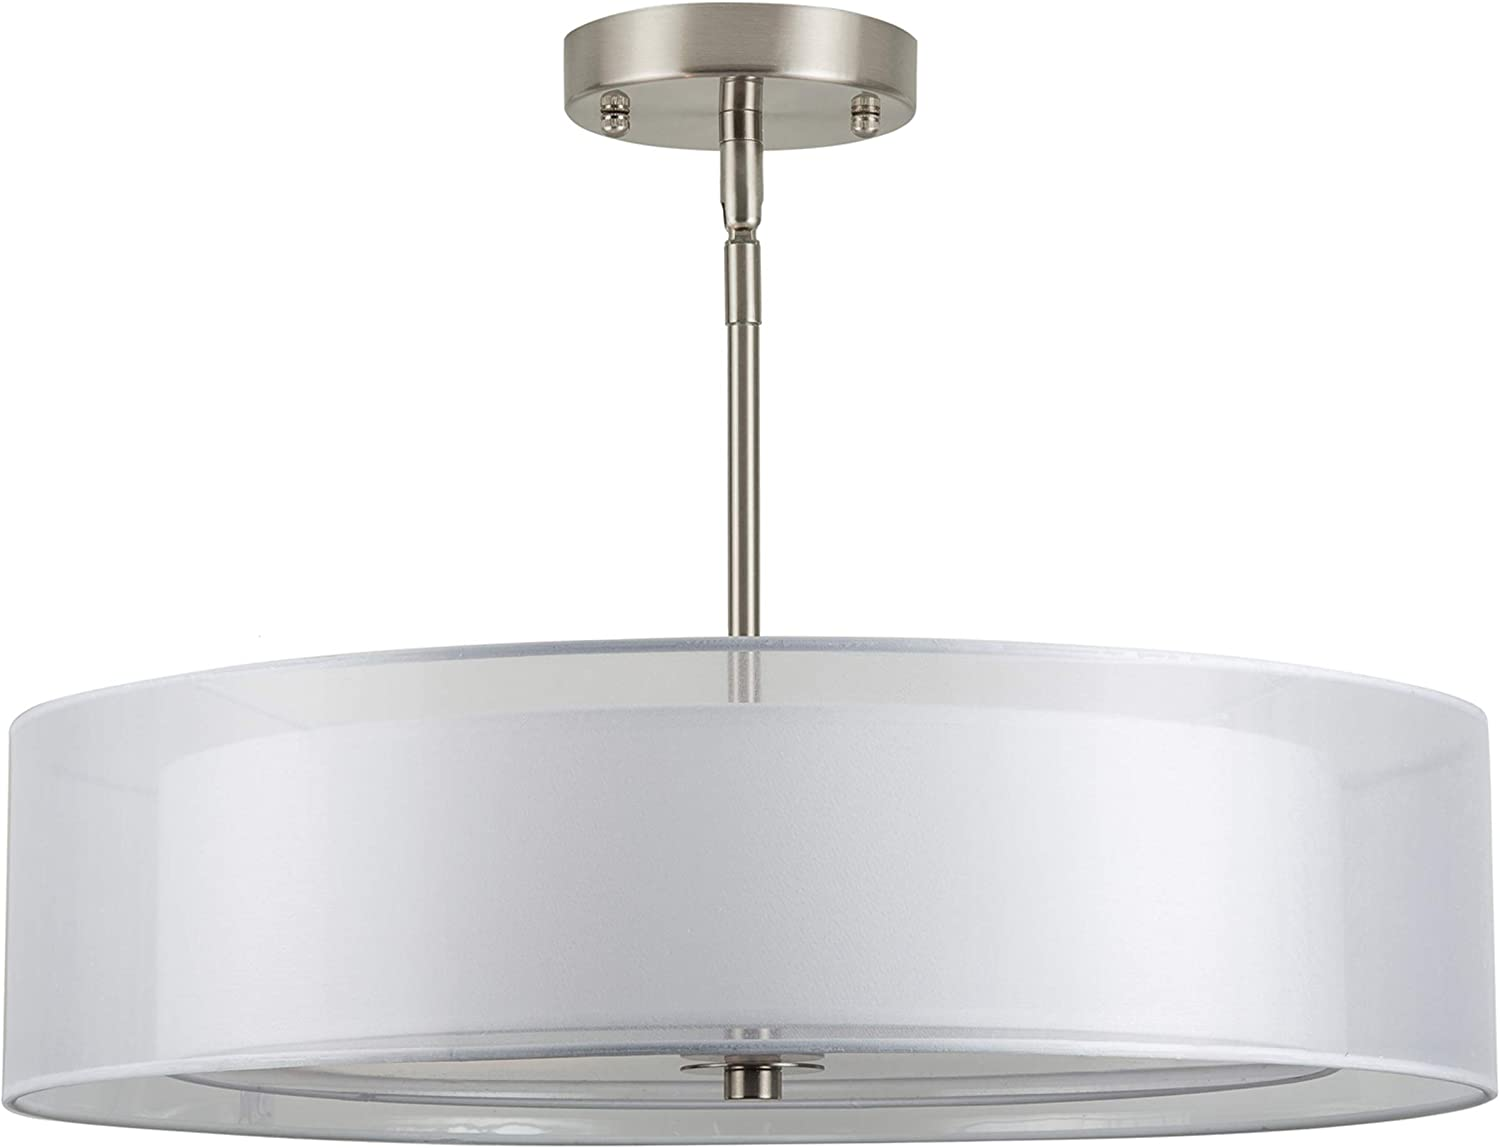 Grazia 20 inch 3 Light Drum Chandelier Ceiling Light – Brushed Nickel – Linea di Liara LL-P117-BN